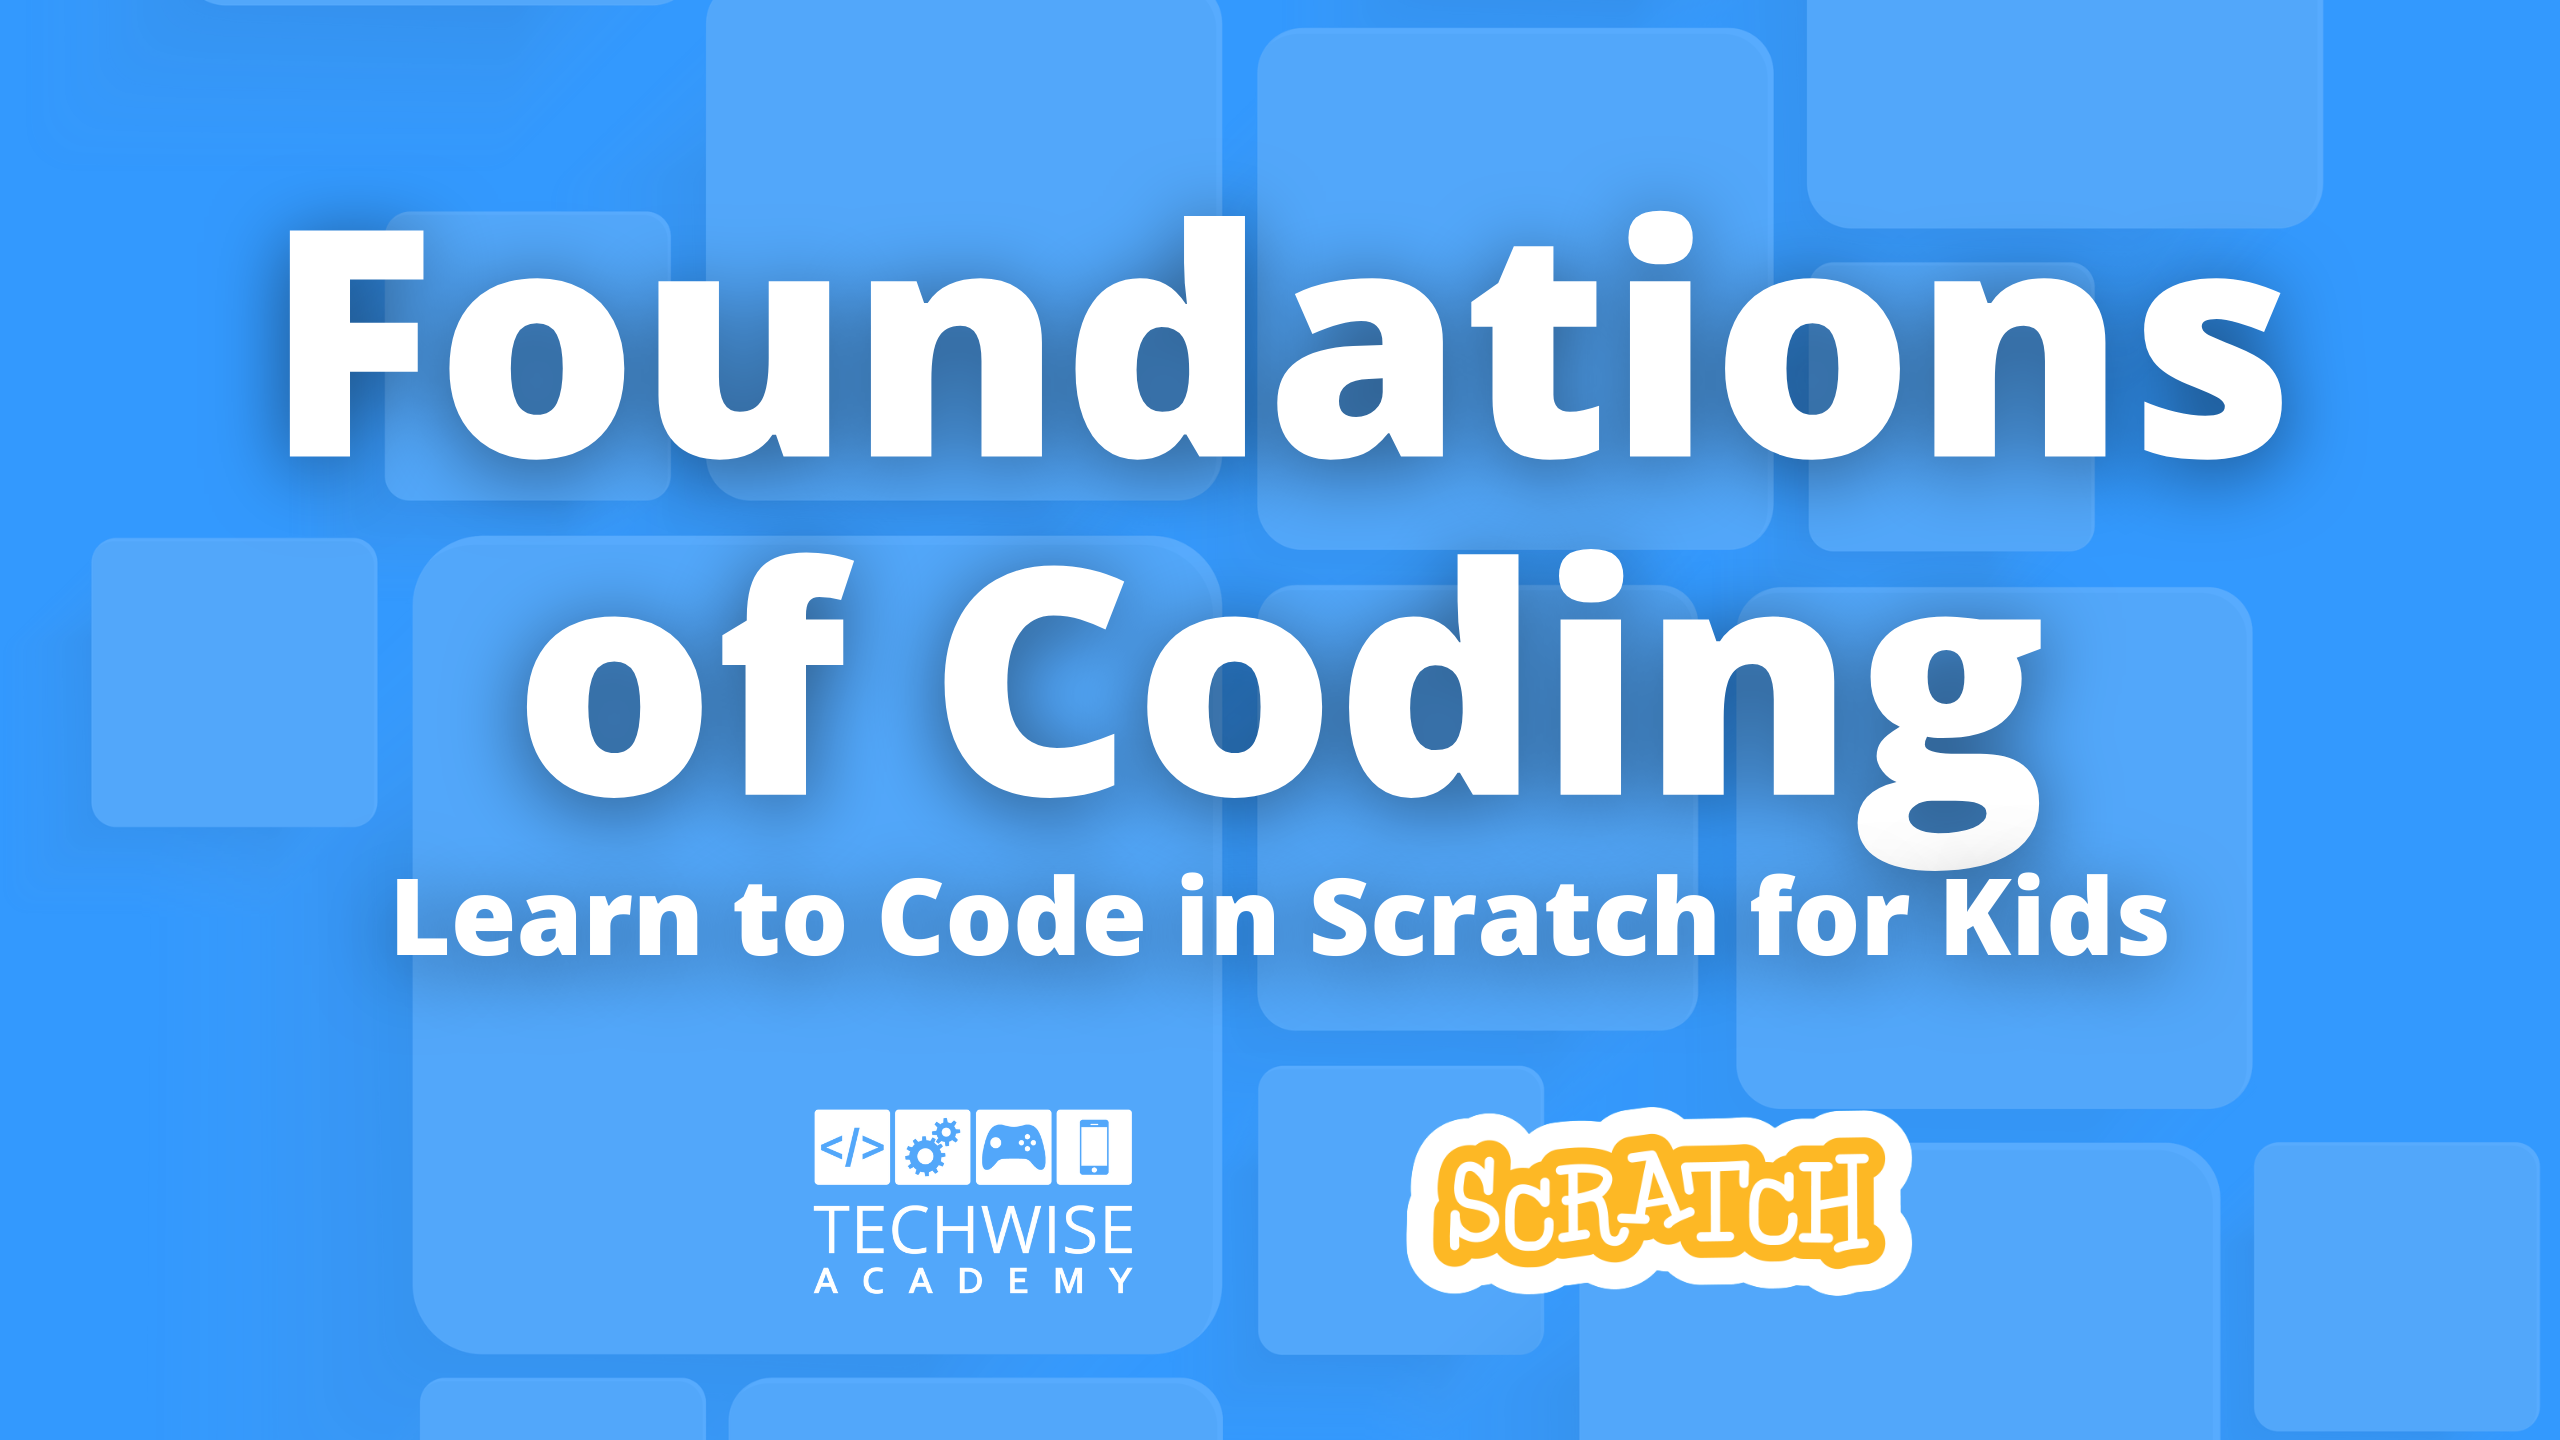 Learn to Code in Scratch for Kids: Foundations of Coding